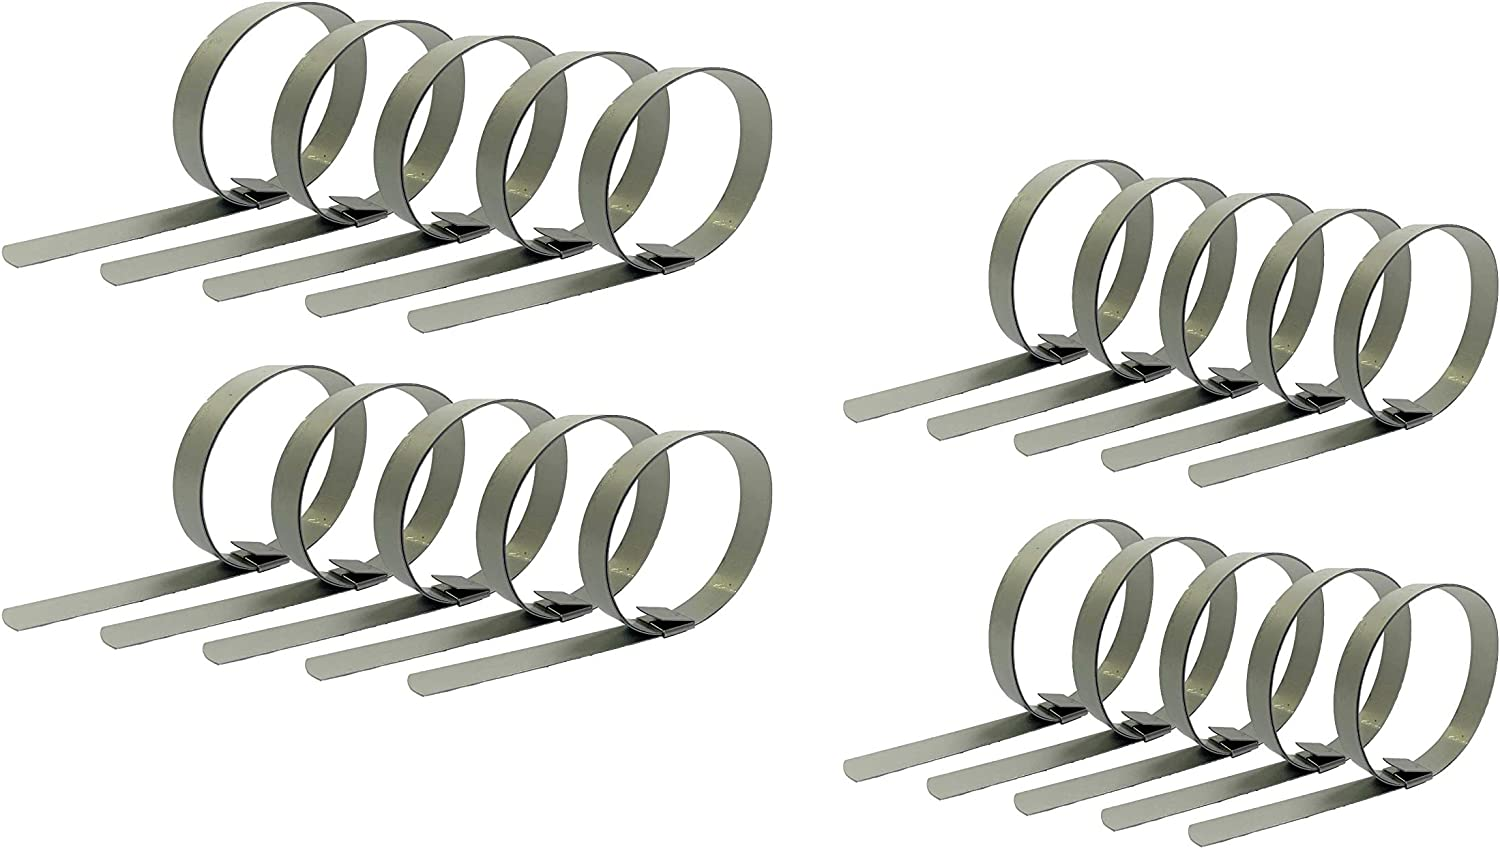 CP0699-5//8 w x 1-1//2 ID 20 1-1//2 Band-It Center Punch Clamps Qty